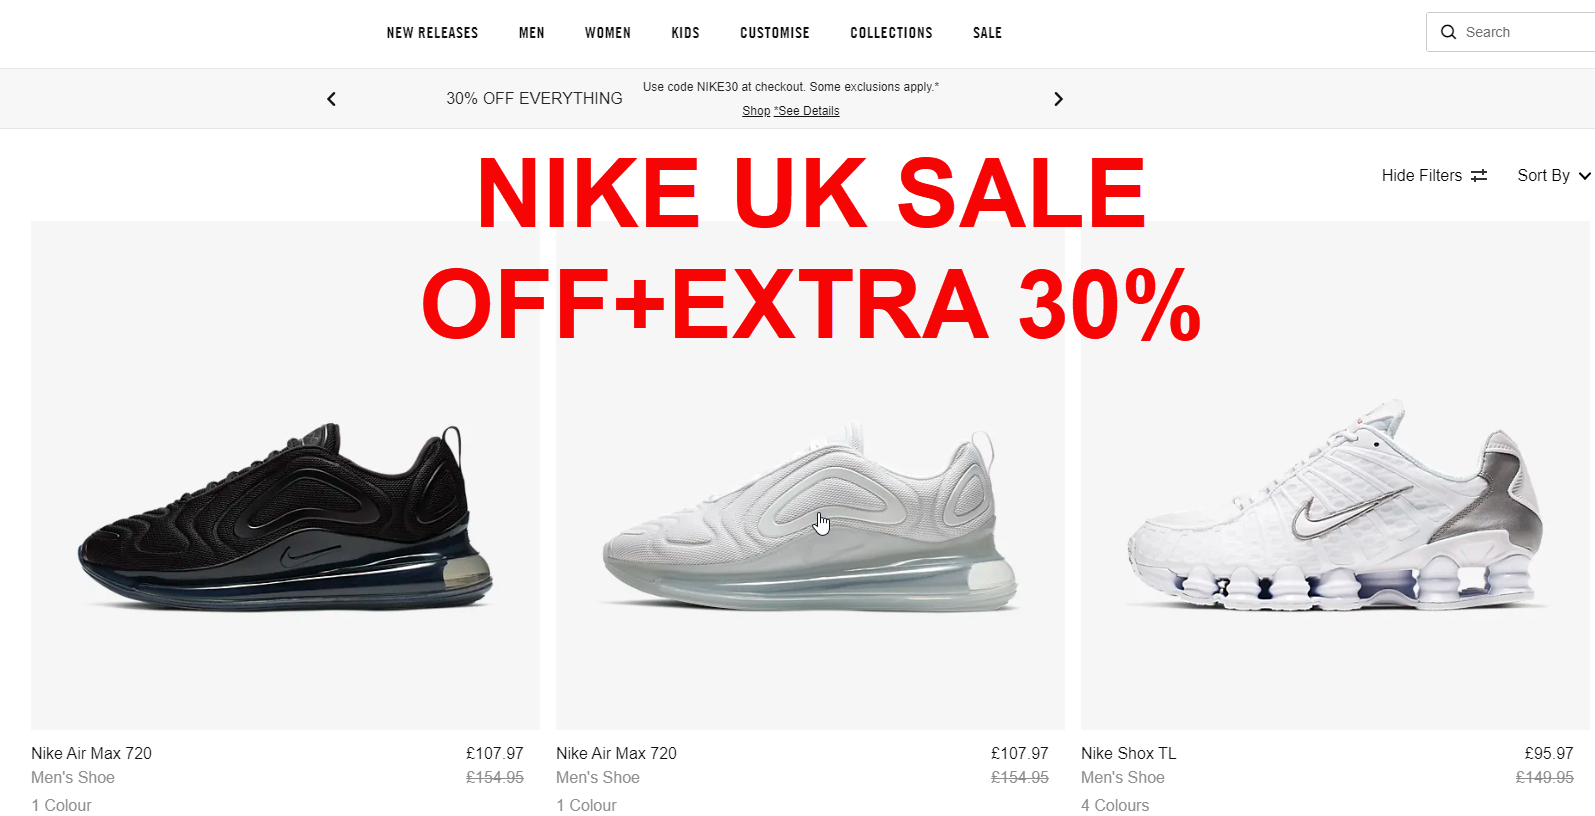 Nike UK siêu giảm giá-sale off Extra 30% up to 70%